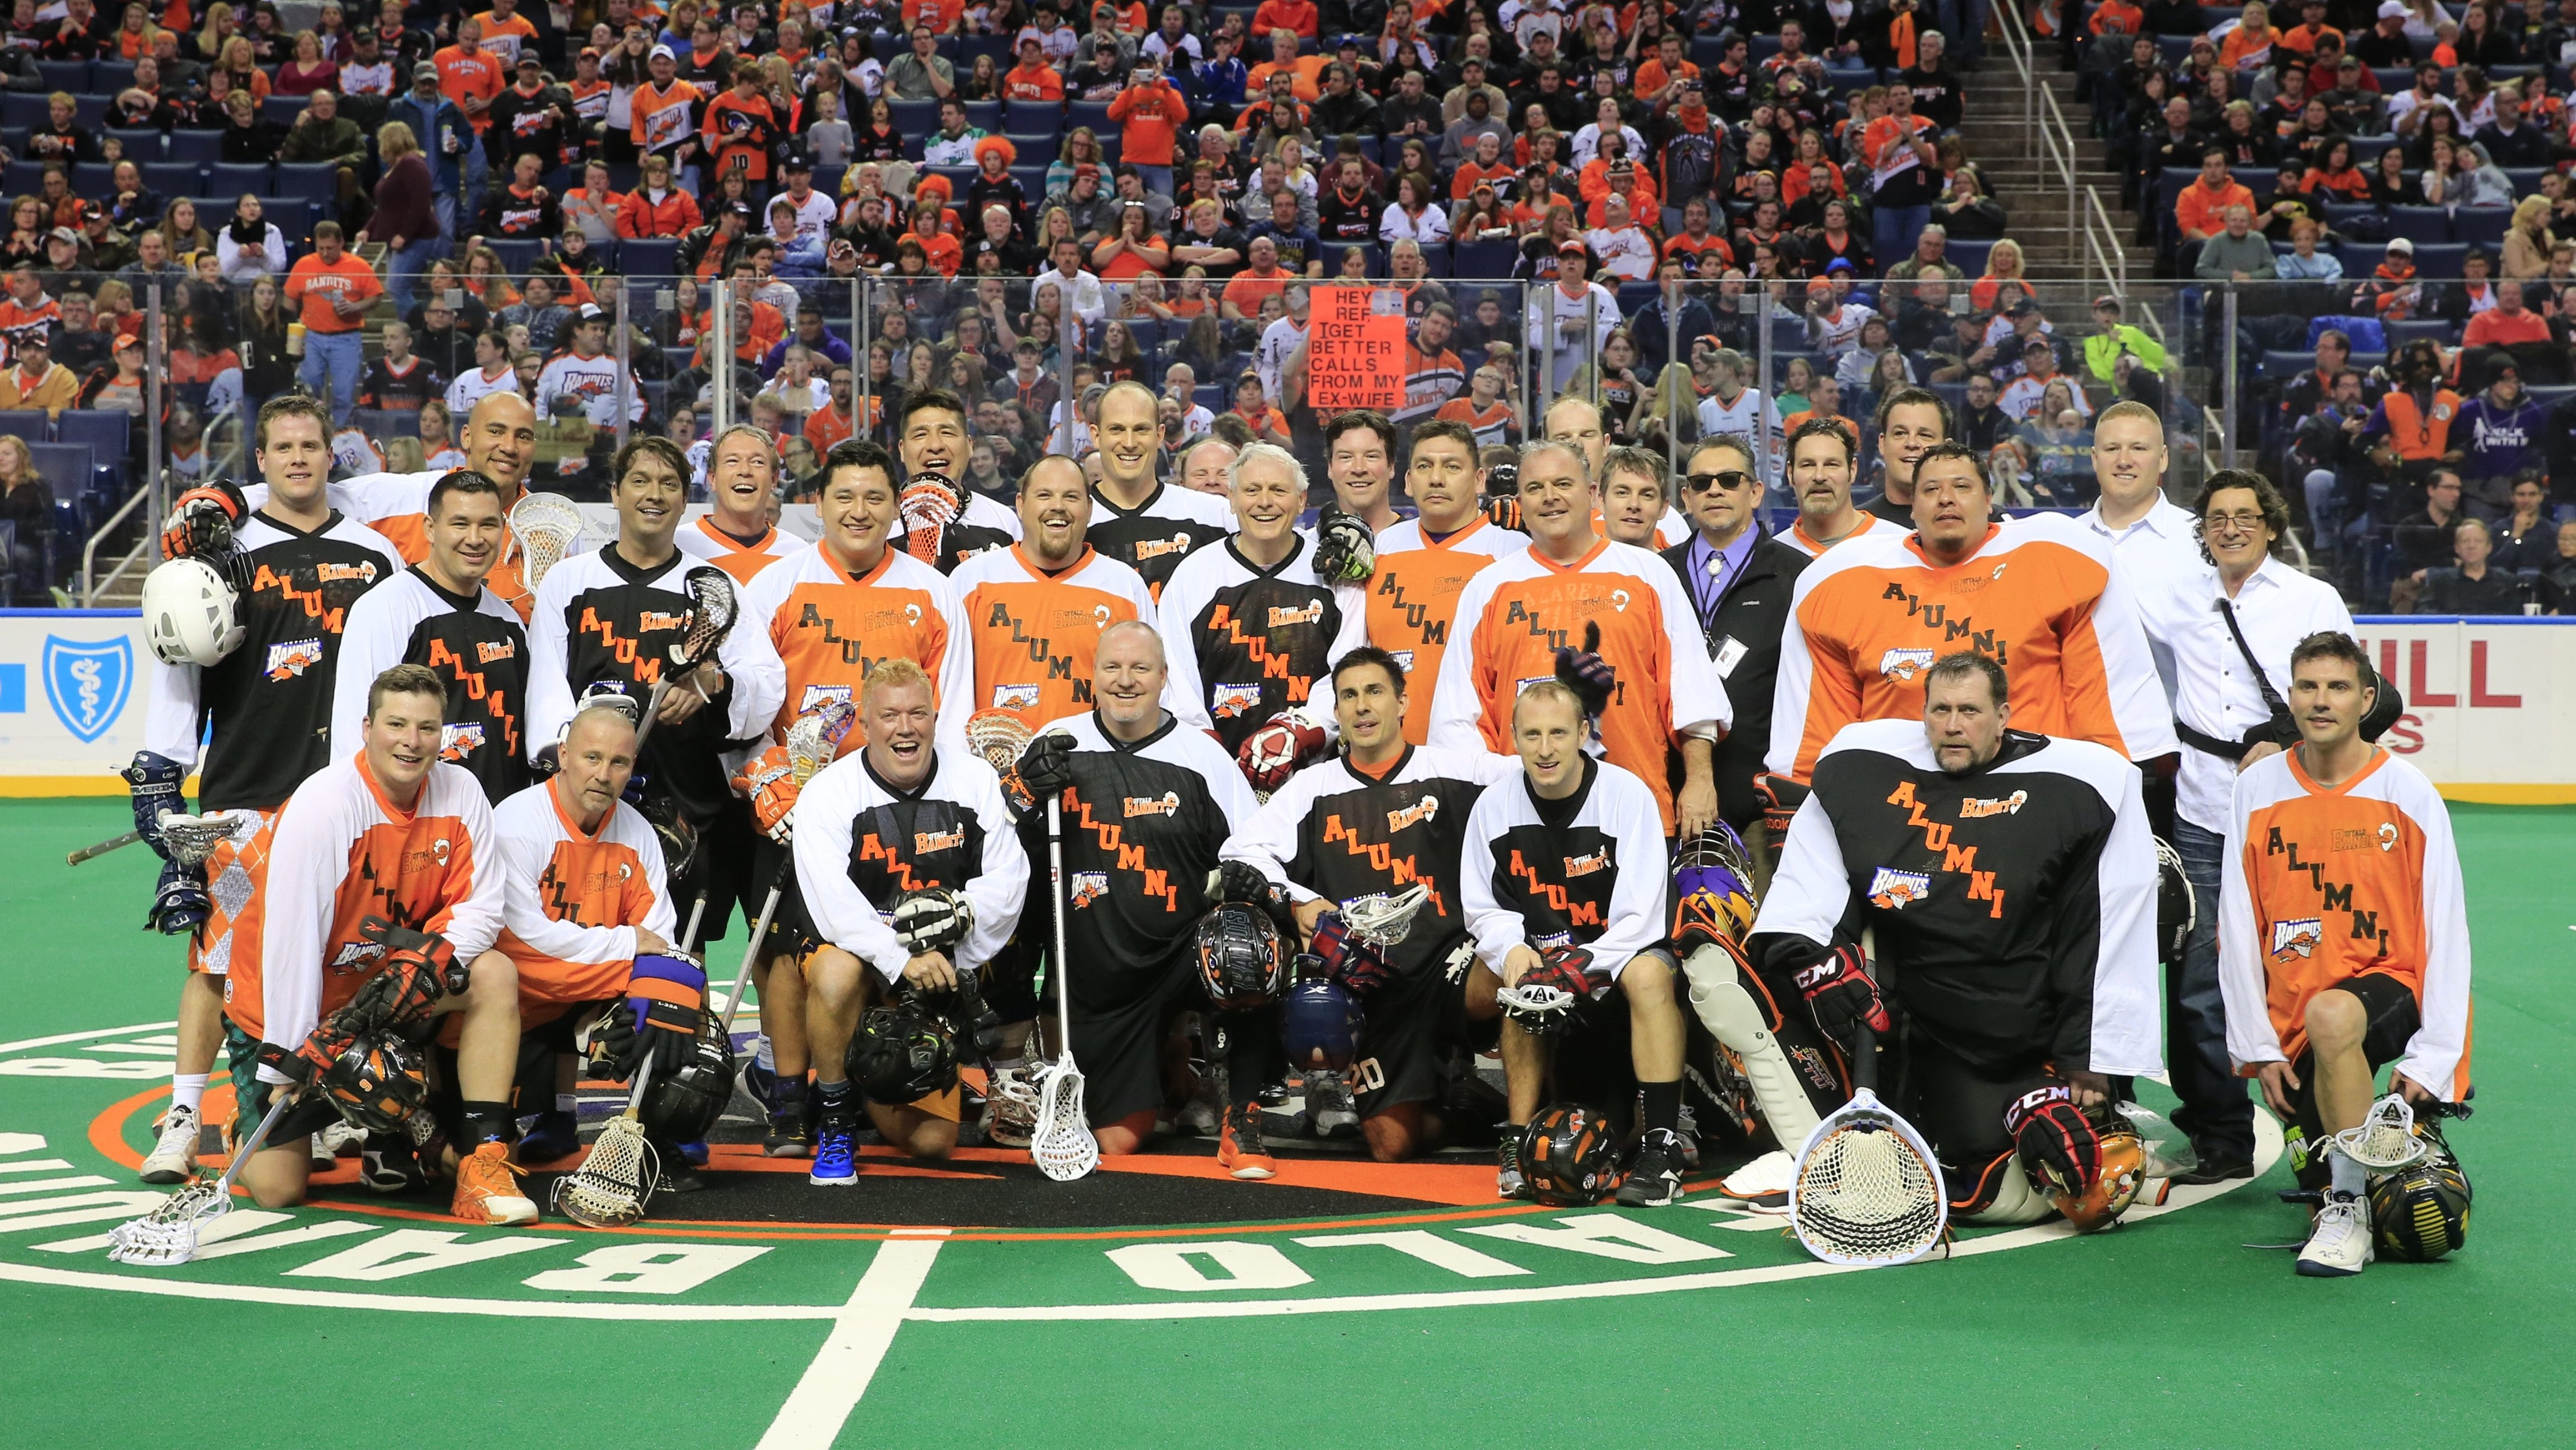 Members of past Buffalo Bandits championship teams pose for a team photo after a exhibition game at halftime of the game with the New England Black Wolves Saturday at First Niagara Center.